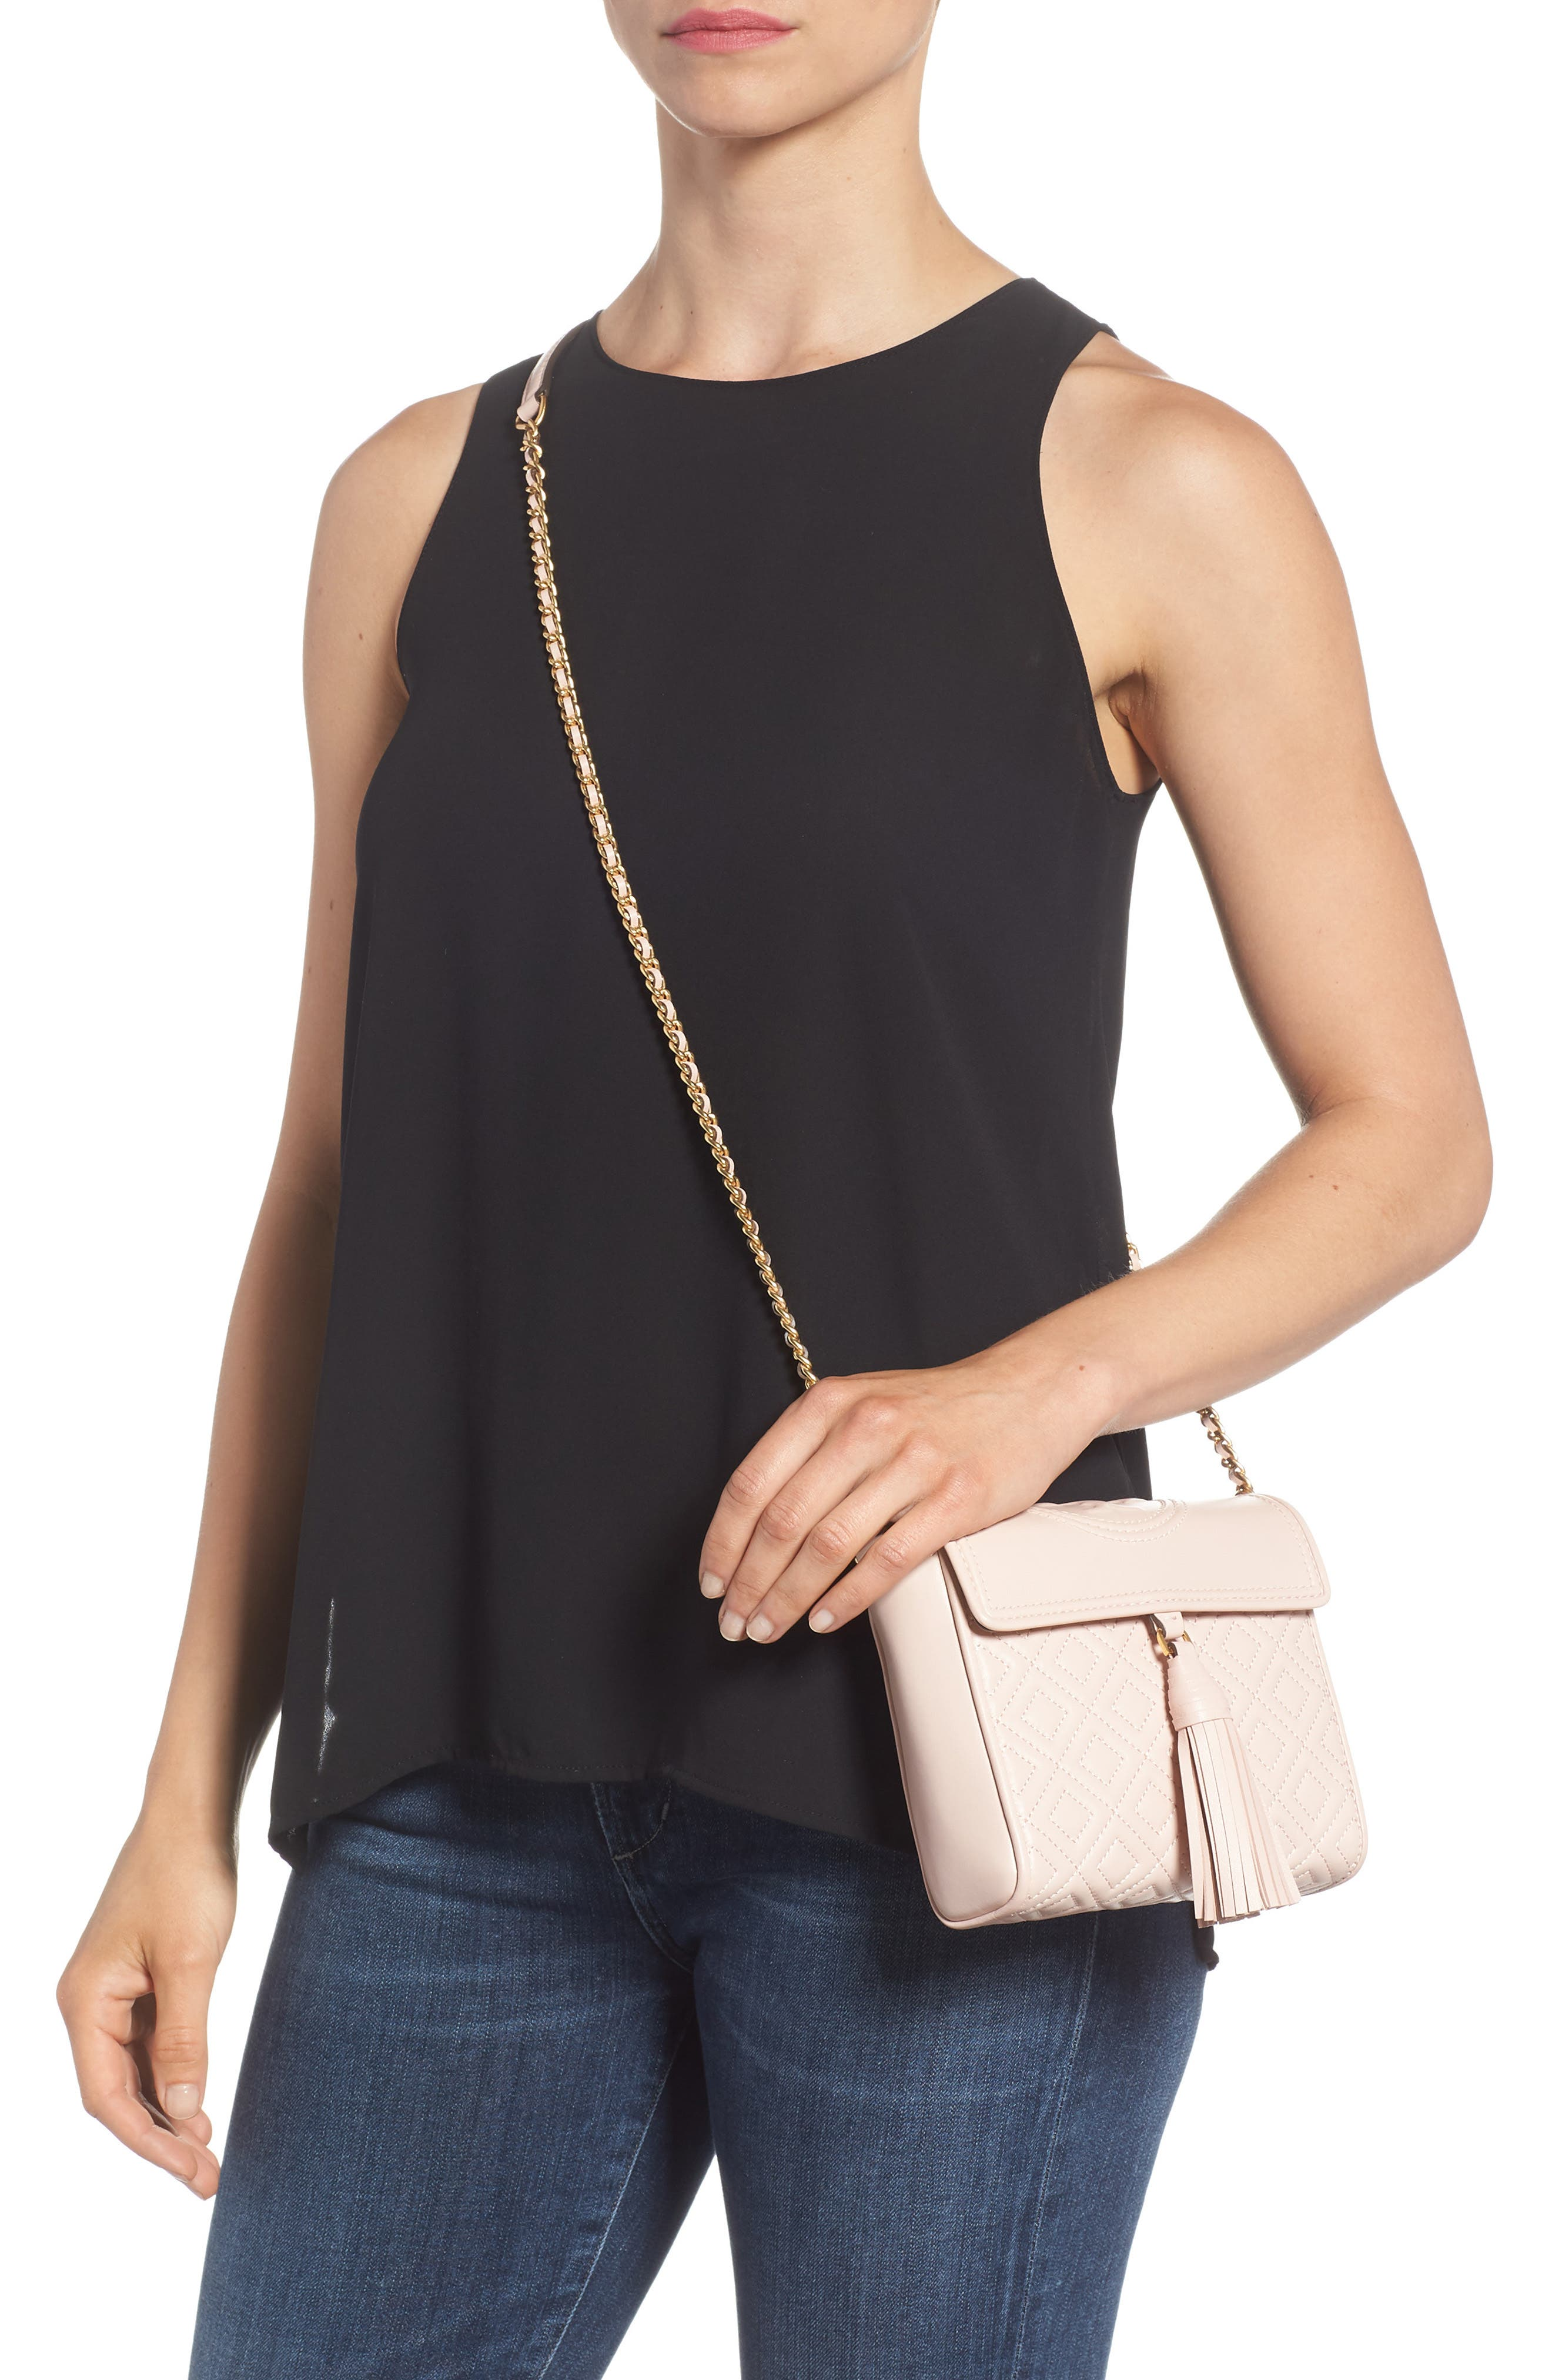 Fleming Quilted Leather Crossbody Bag,                             Alternate thumbnail 3, color,                             Shell Pink